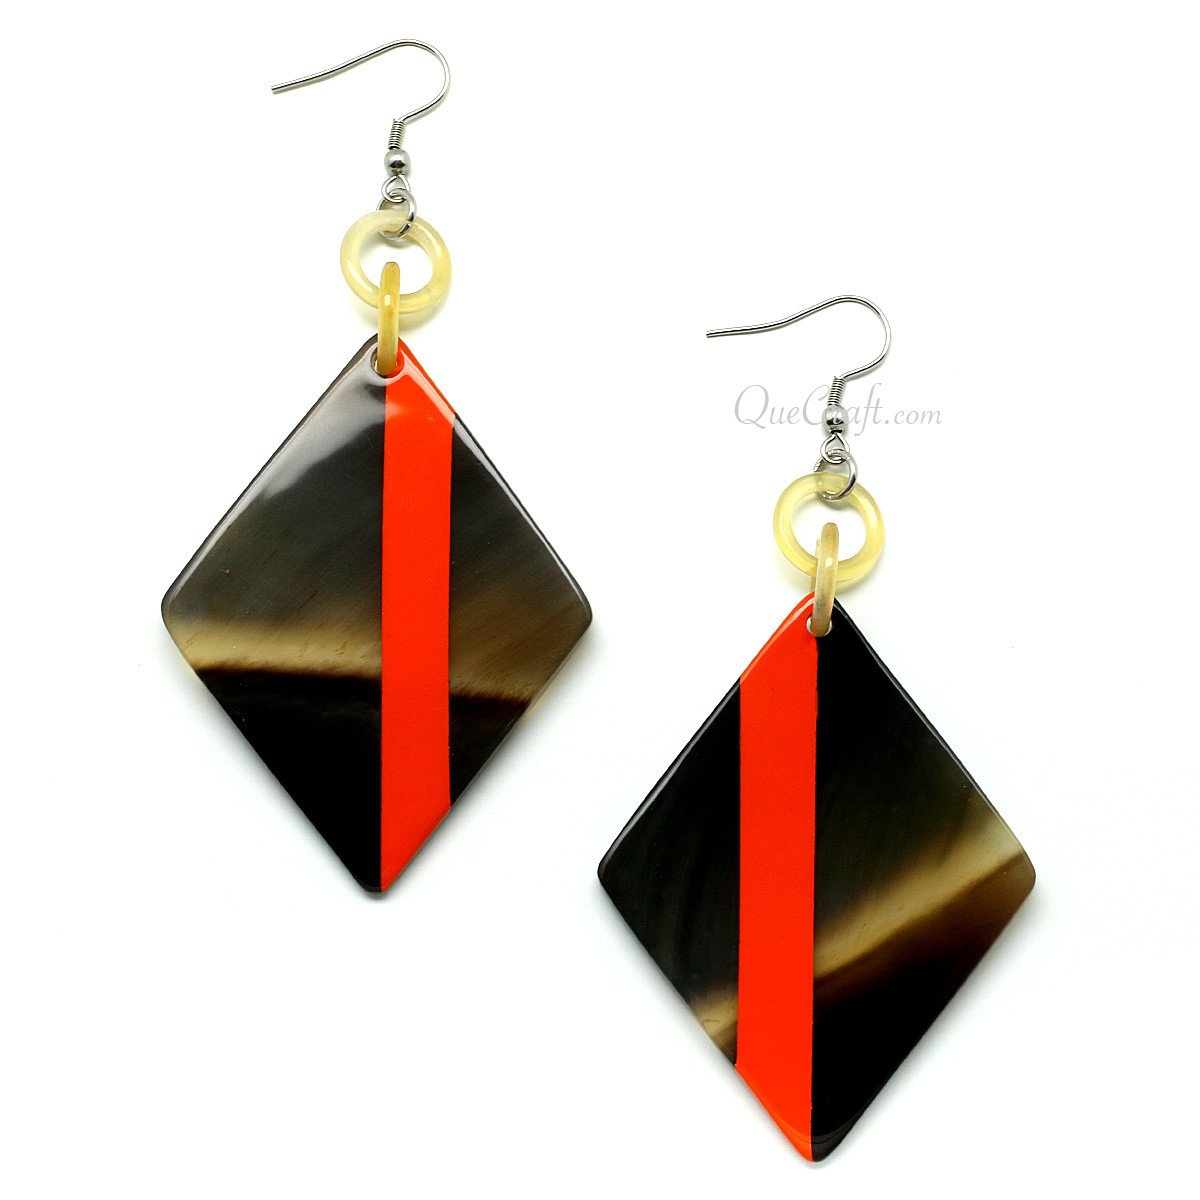 Horn & Lacquer Earrings #11393 - HORN.JEWELRY by QueCraft